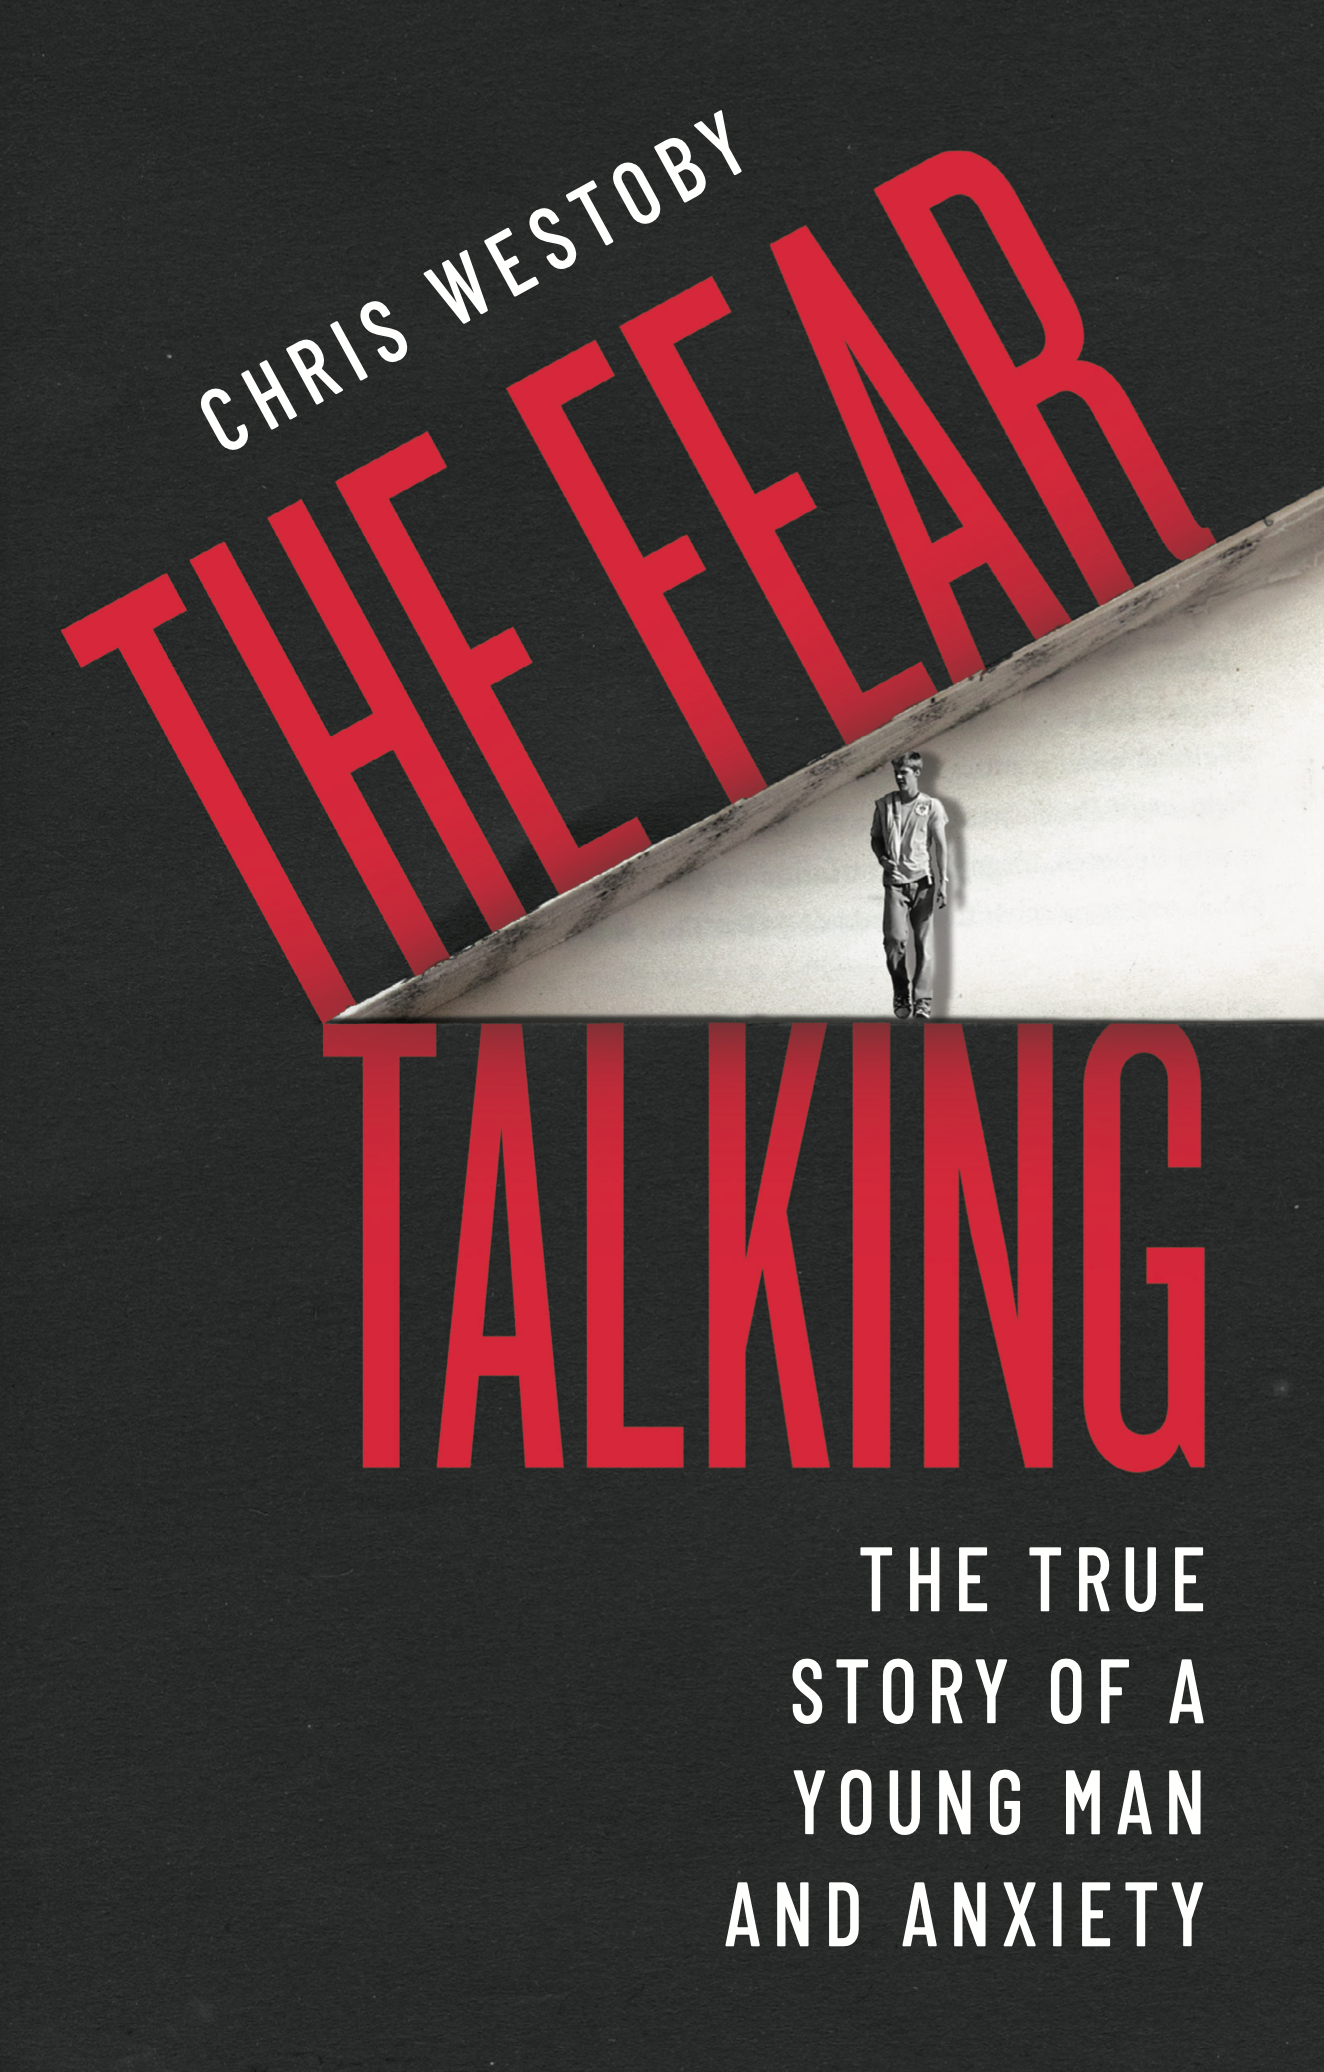 Chris Westoby book cover - The Fear Talking